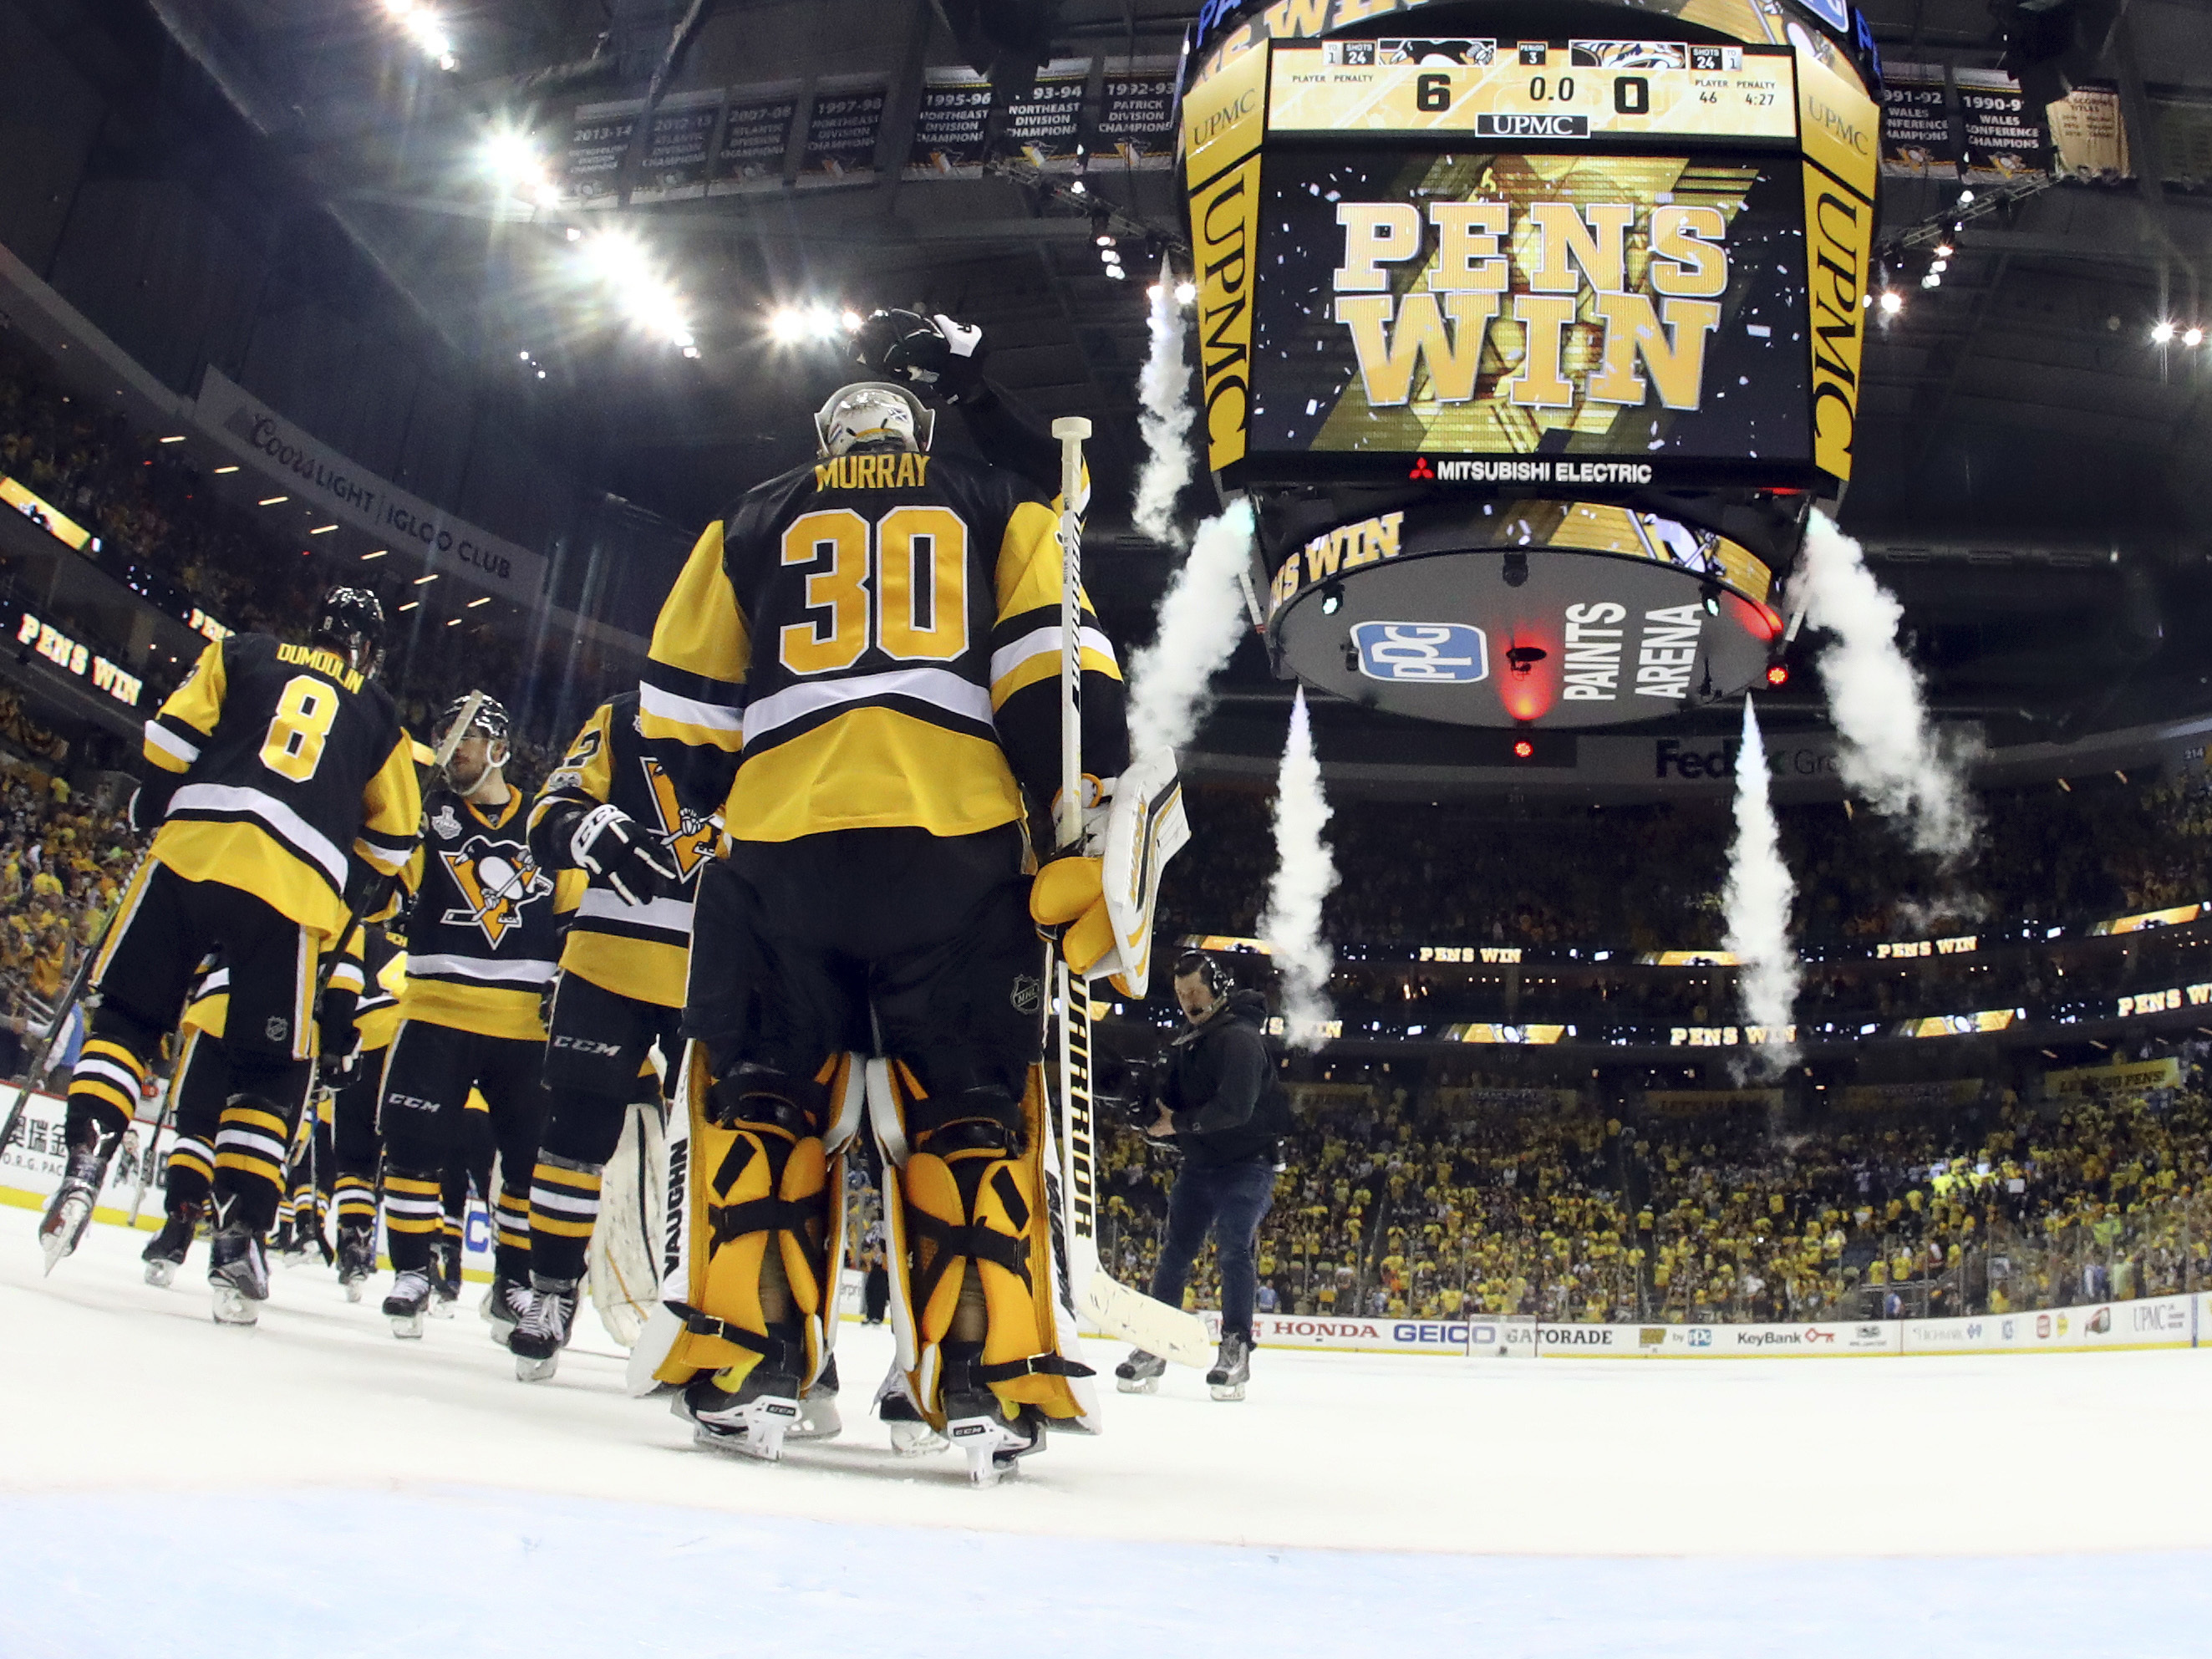 Crosby's brilliant night overshadowed by Subban tussle, water bottle toss